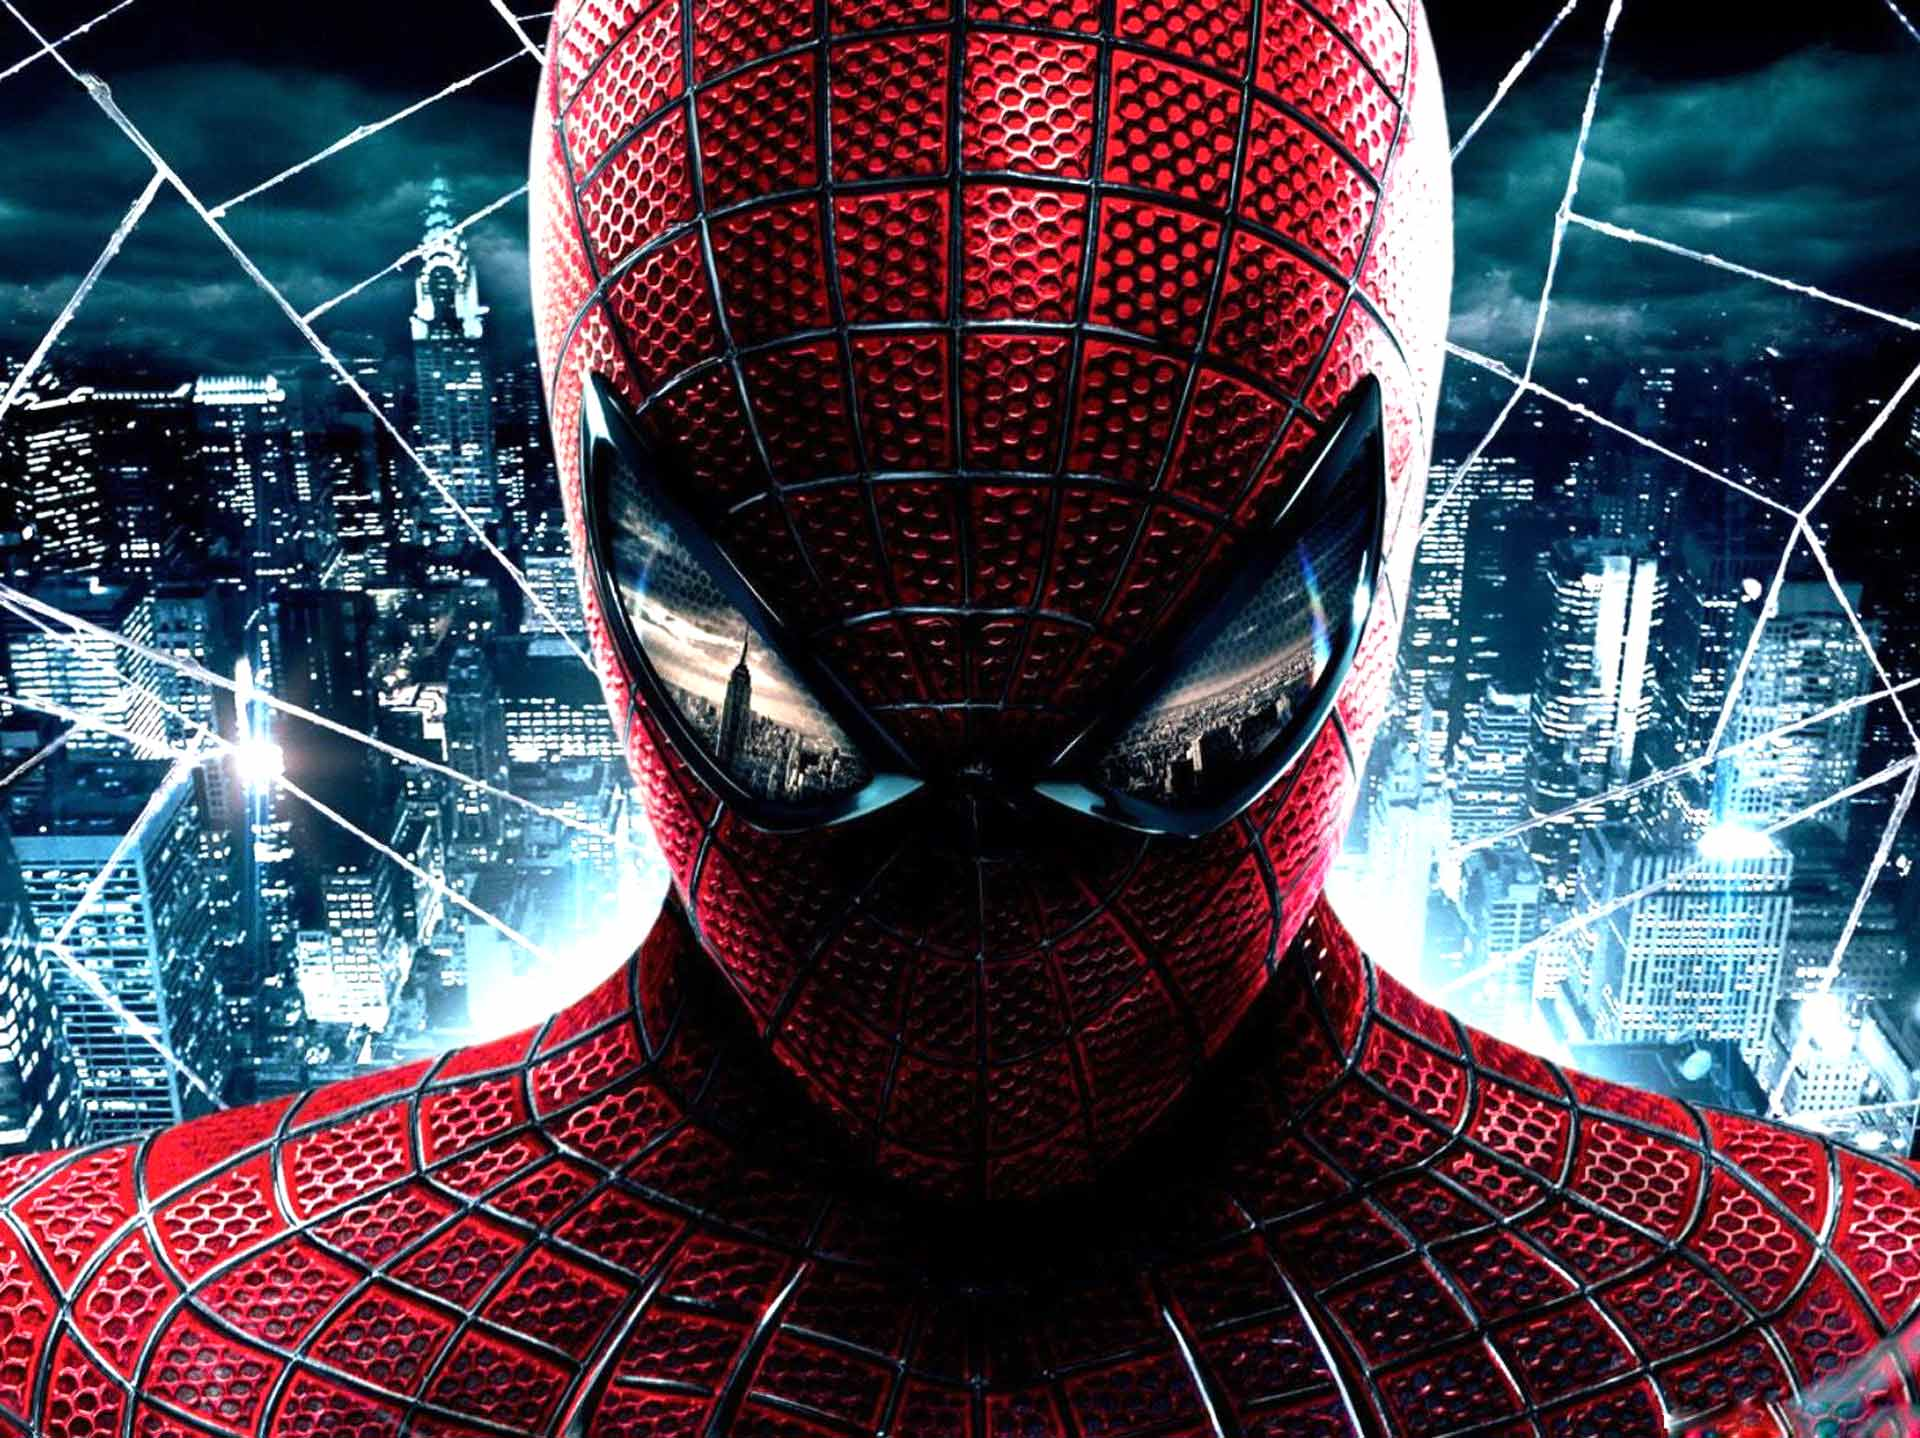 The Amazing Spider Man 2 HD Wallpapers & Desktop Backgrounds | The ...